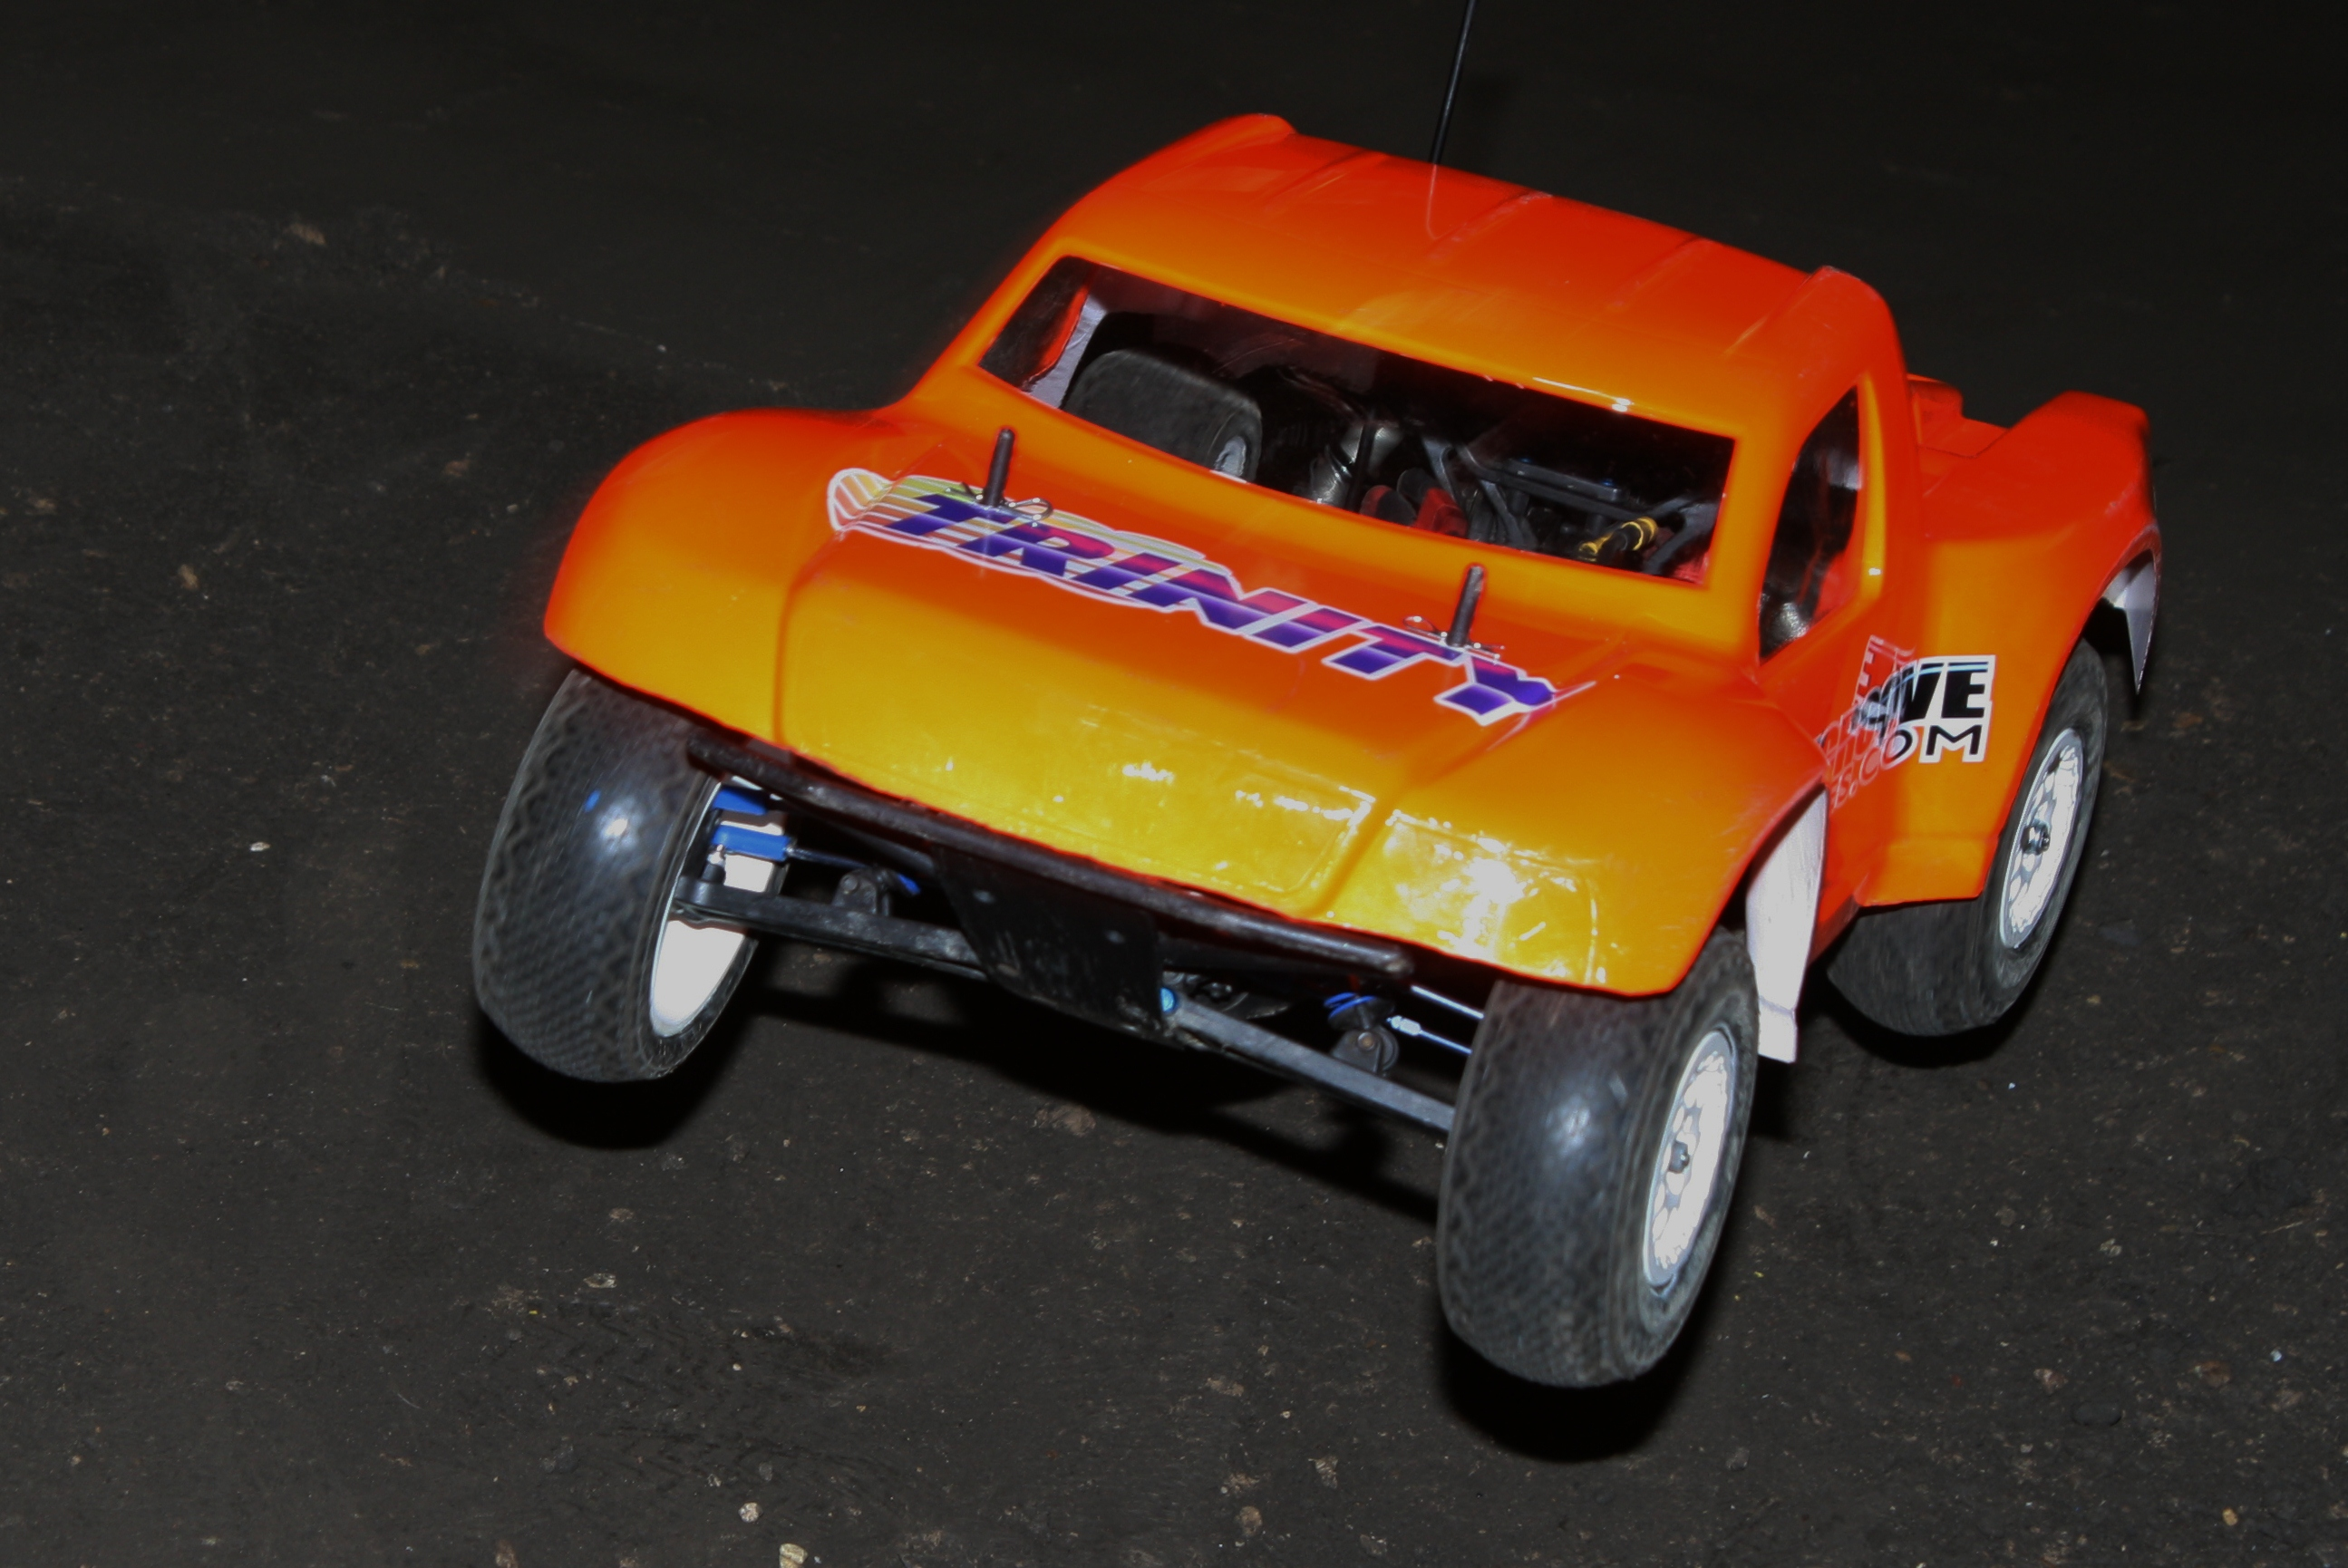 Day 1 Wrap-up Of The 2nd Round of The 2011 Short Course Showdown Nationwide Series